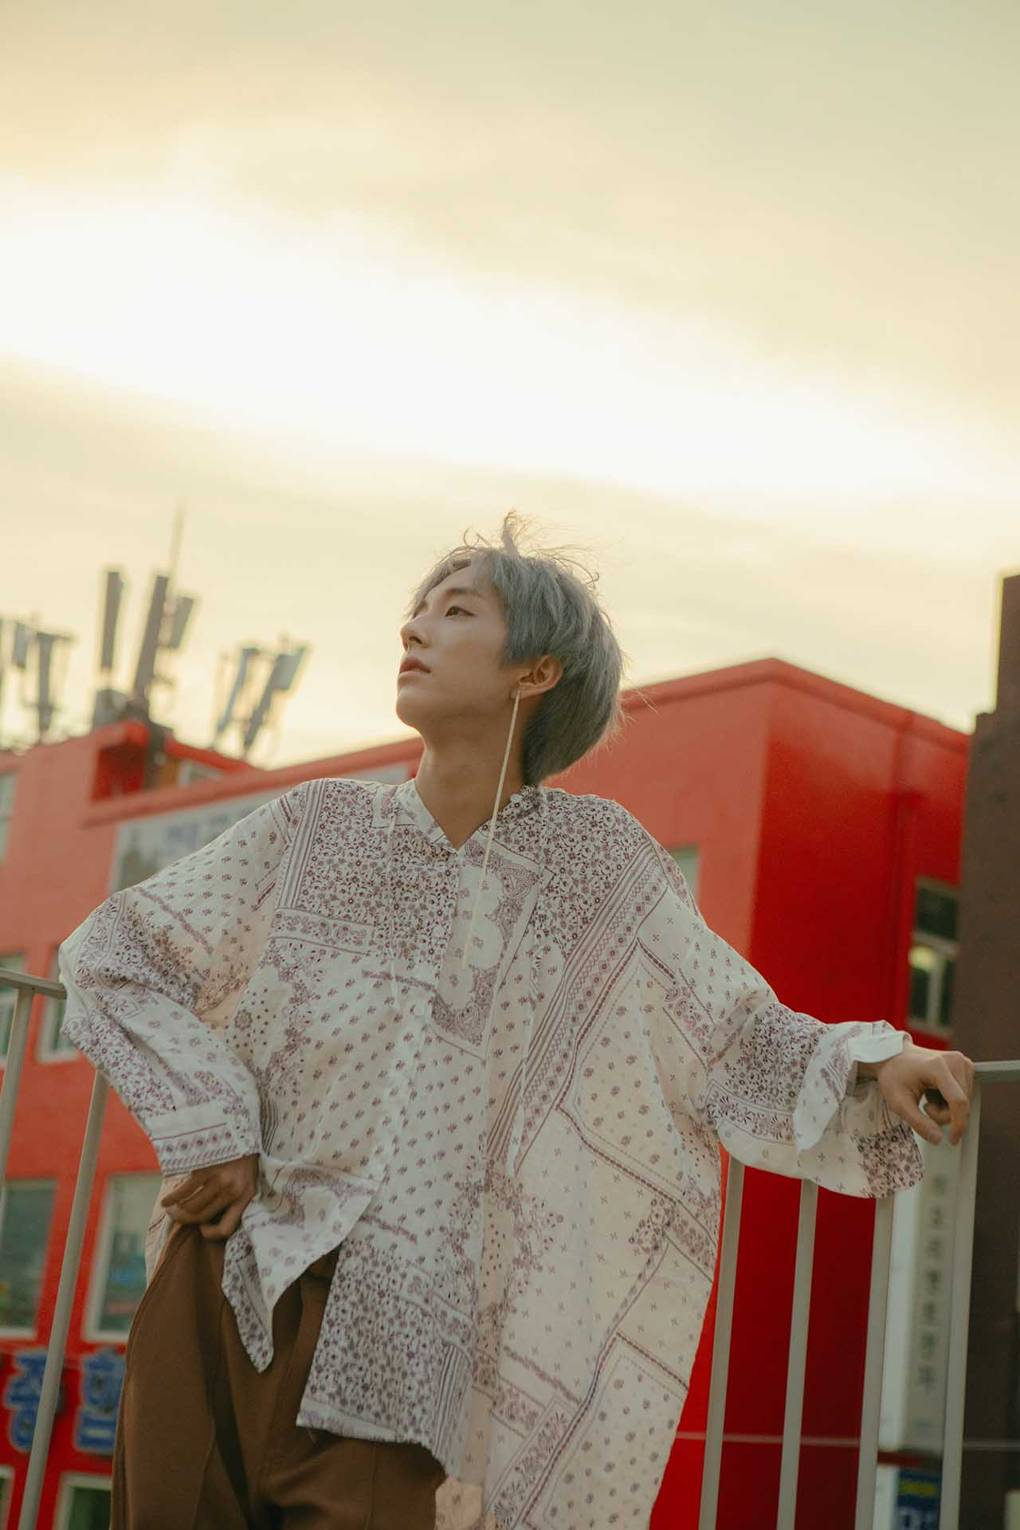 Miss Vogue Meets Holland – The First Openly Gay K-pop Star | British